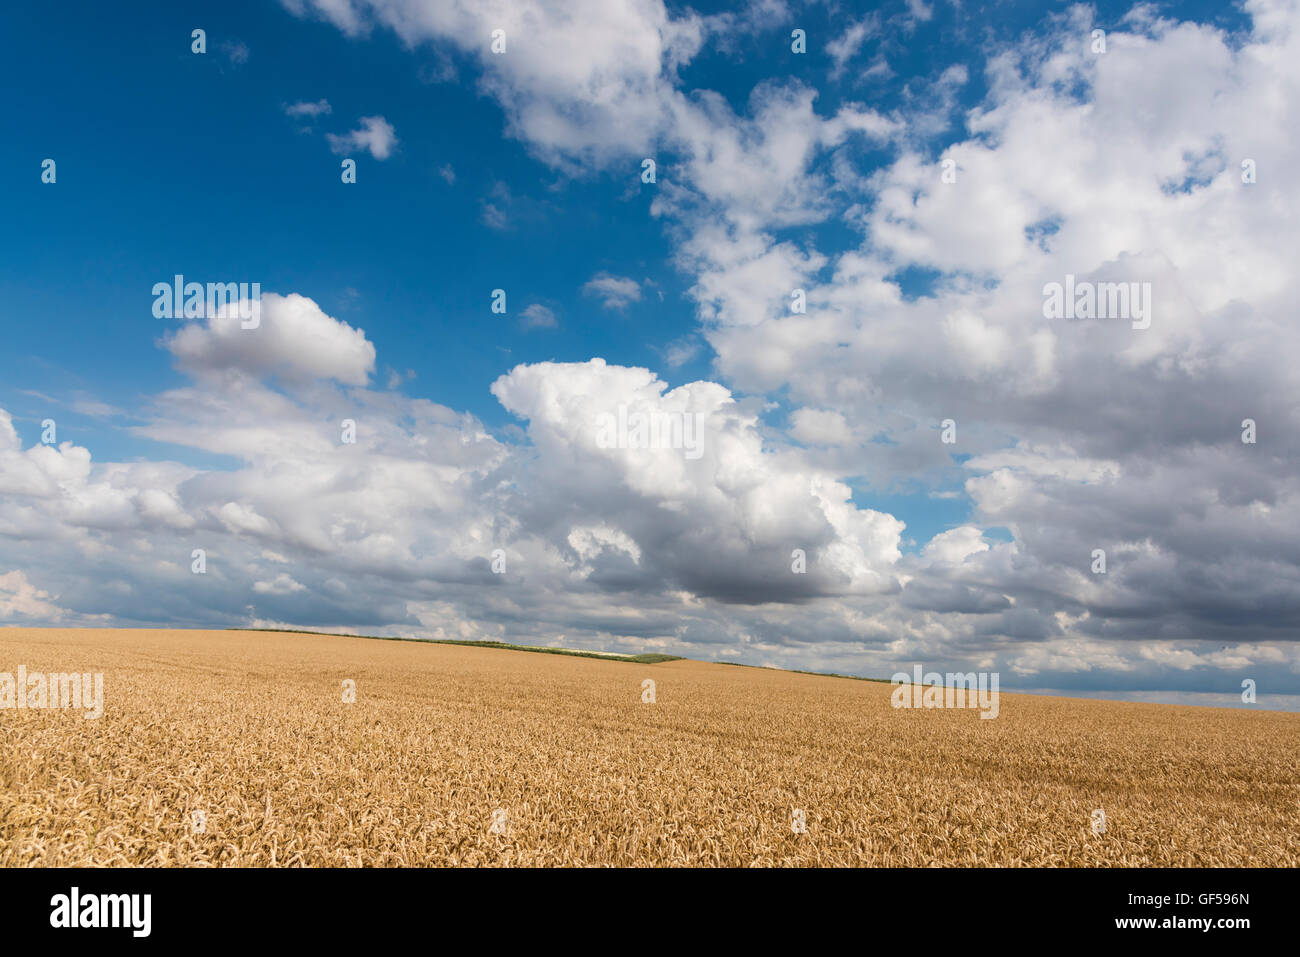 A landscape of wheat field with cumulus clouds and sunshine in Cambridgeshire East Anglia UK - Stock Image